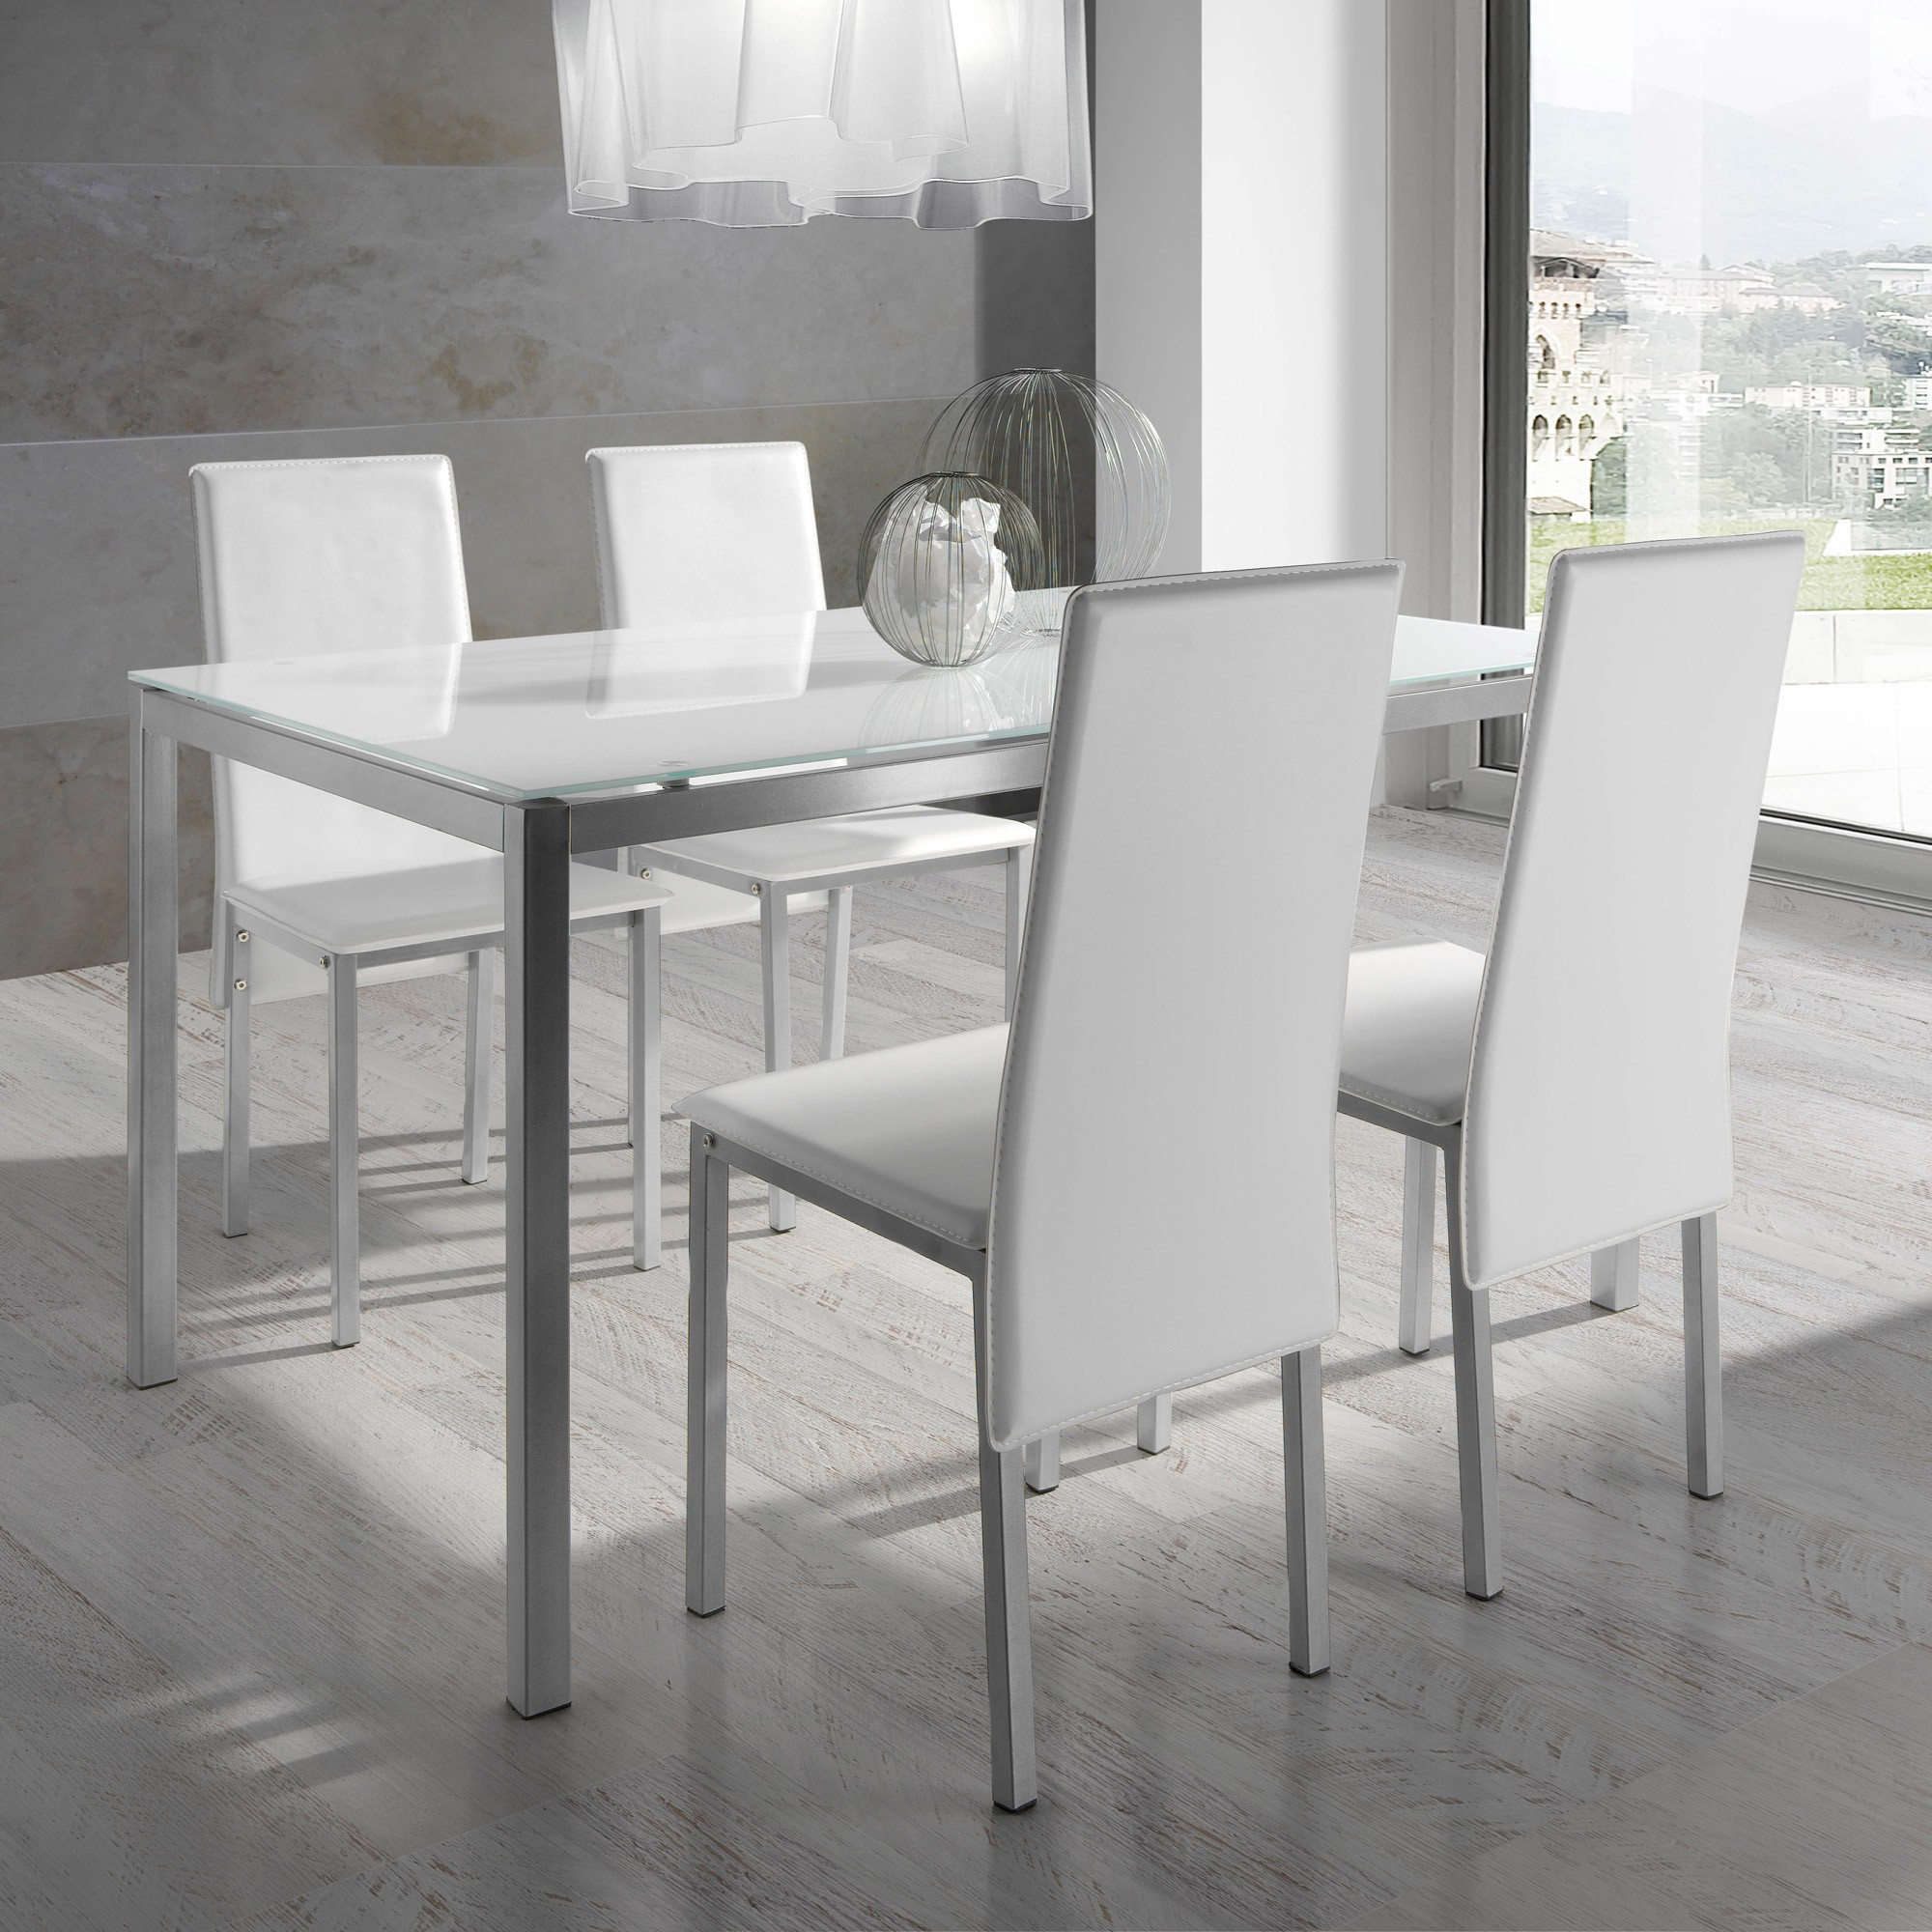 Ensemble table et chaise salle a manger but chaise for Chaise de salle a manger conforama